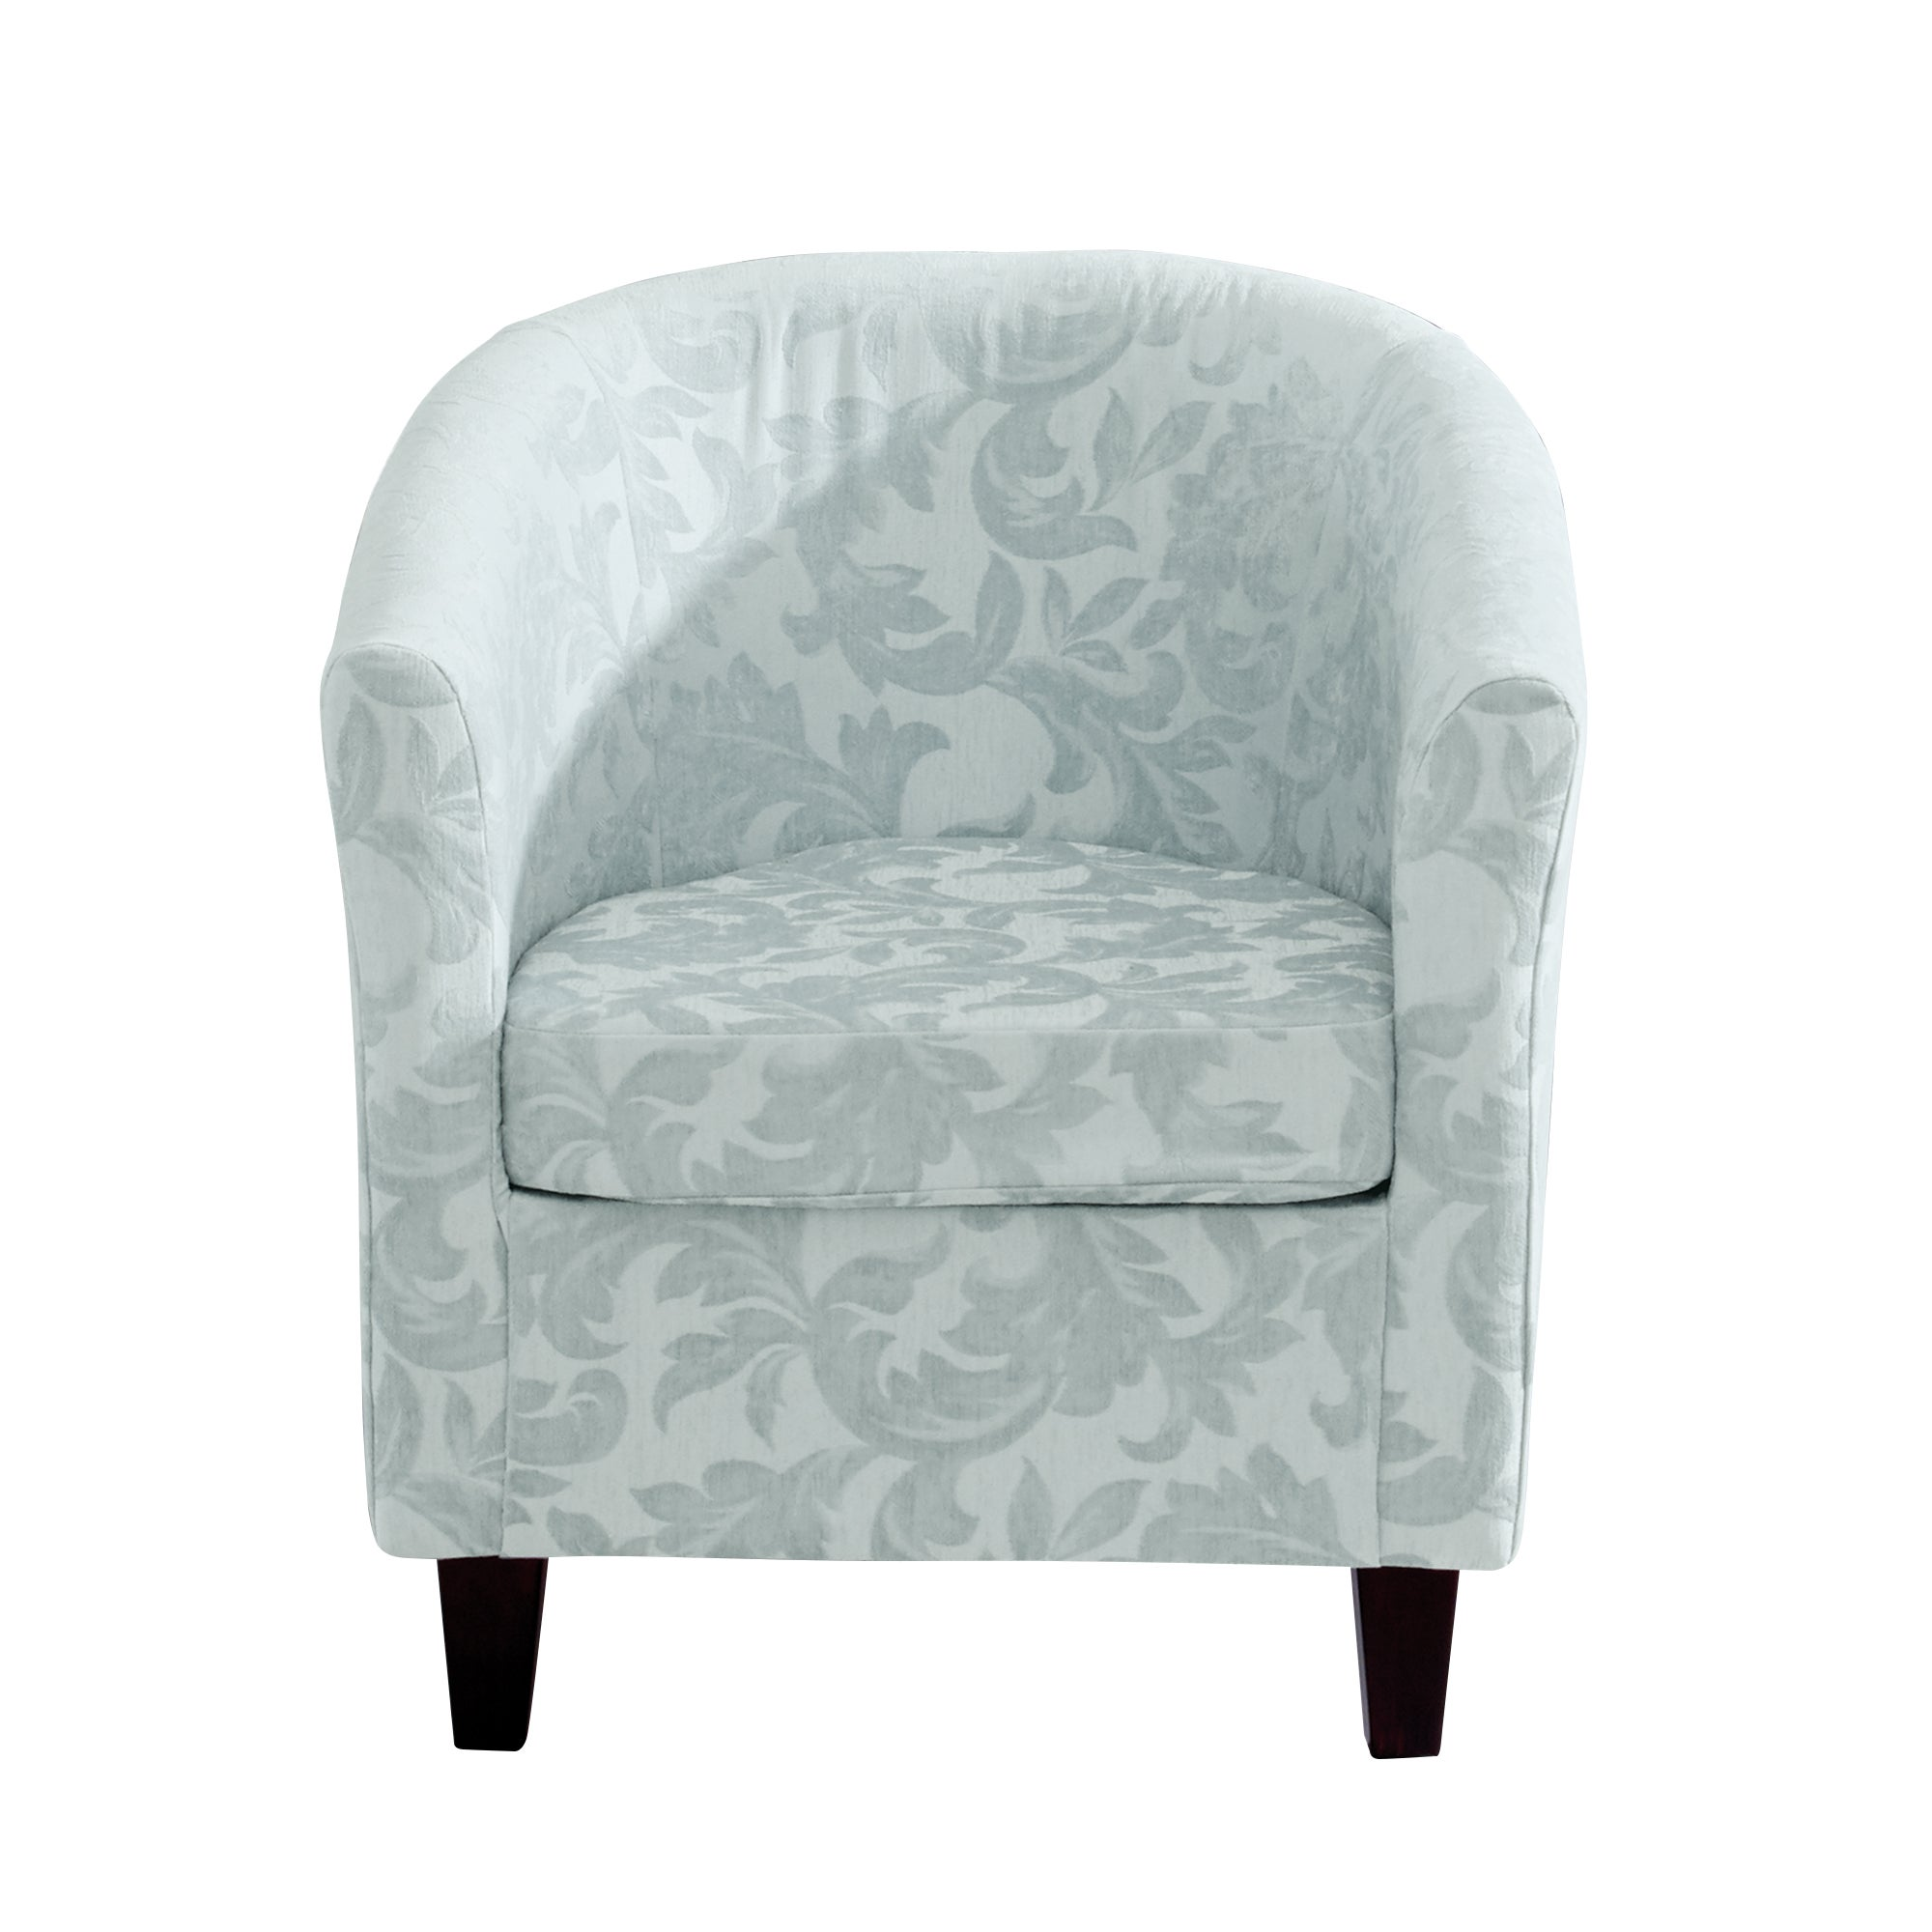 Acanthus Floral Tub Chair